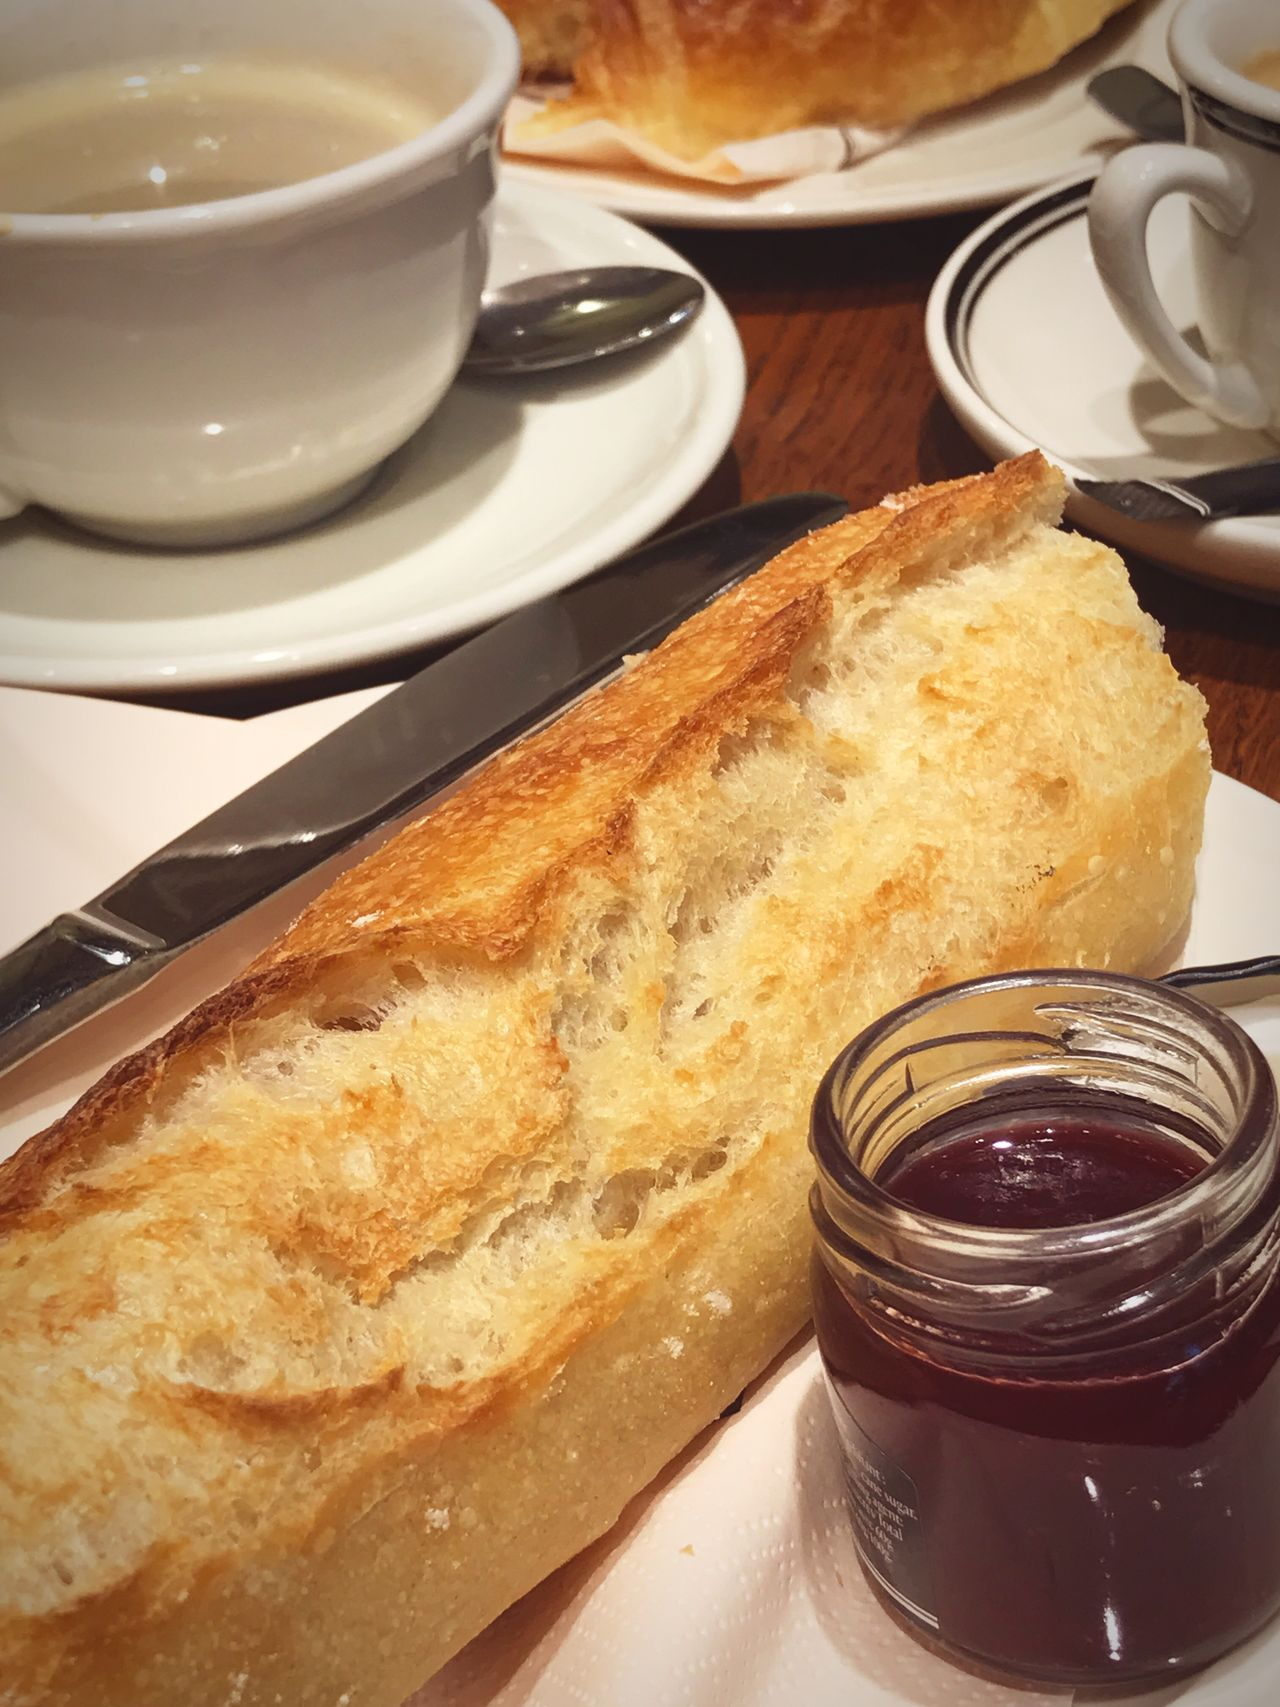 Breakfast Food And Drink Plate Food Coffee Cup Table Ready-to-eat Freshness Coffee - Drink Bread Indoors  Breakfast Sweet Food No People Serving Size Drink Close-up Healthy Eating Sweet Pie Day Baguette Jam Sweet Cafe Traditional